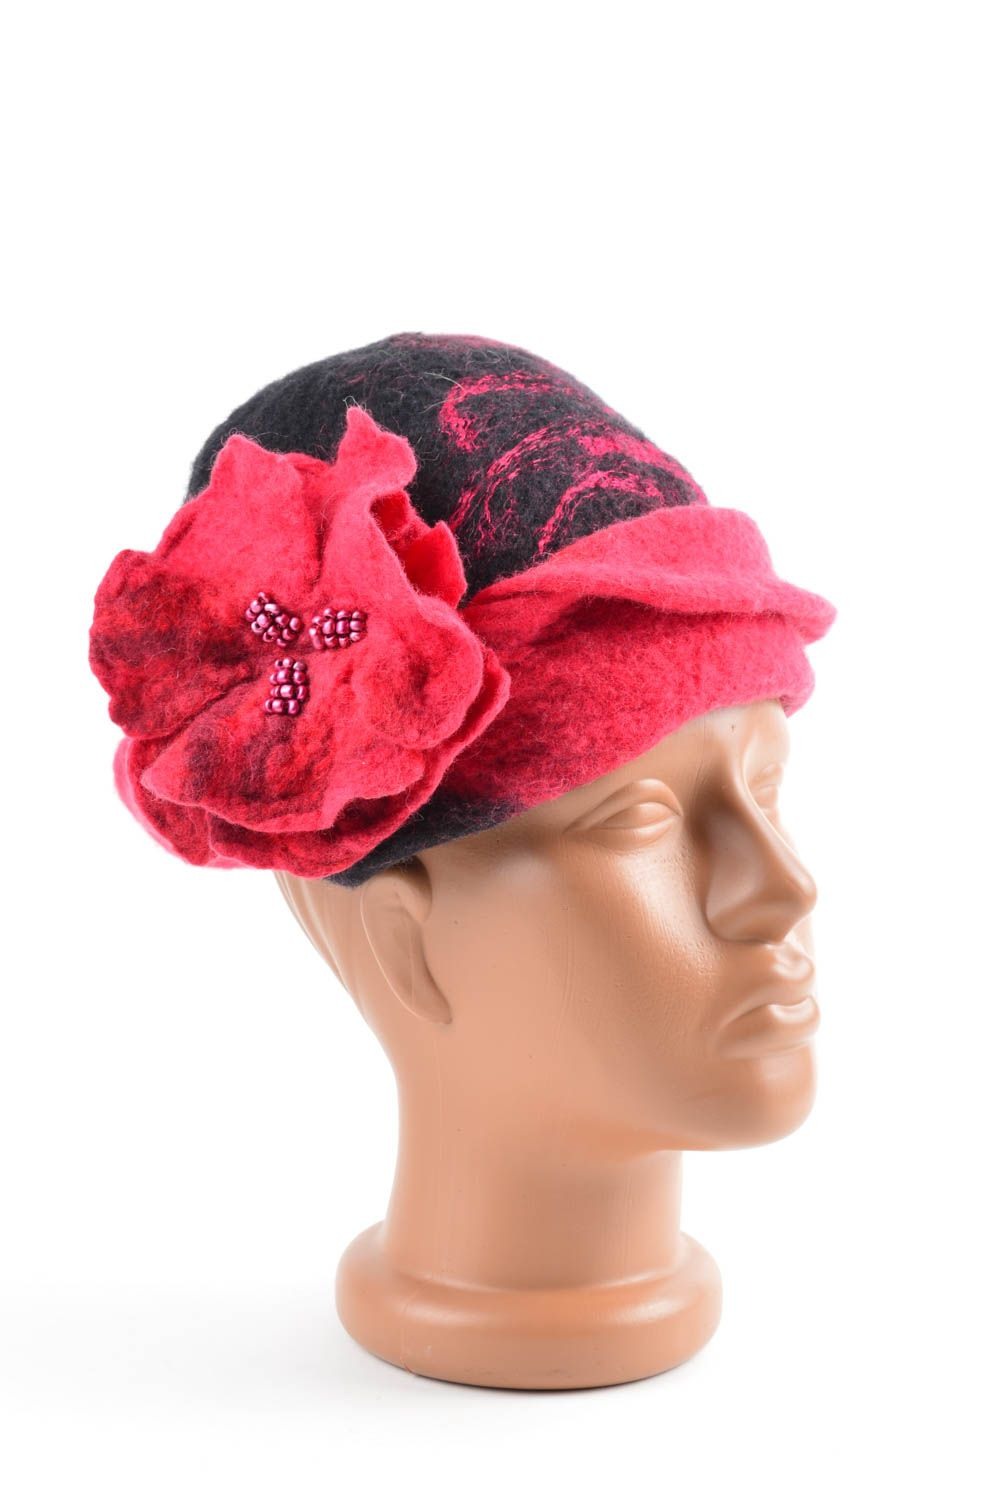 headwear Handmade designer woolen cap unusual winter headwear beautiful red hat - MADEheart.com